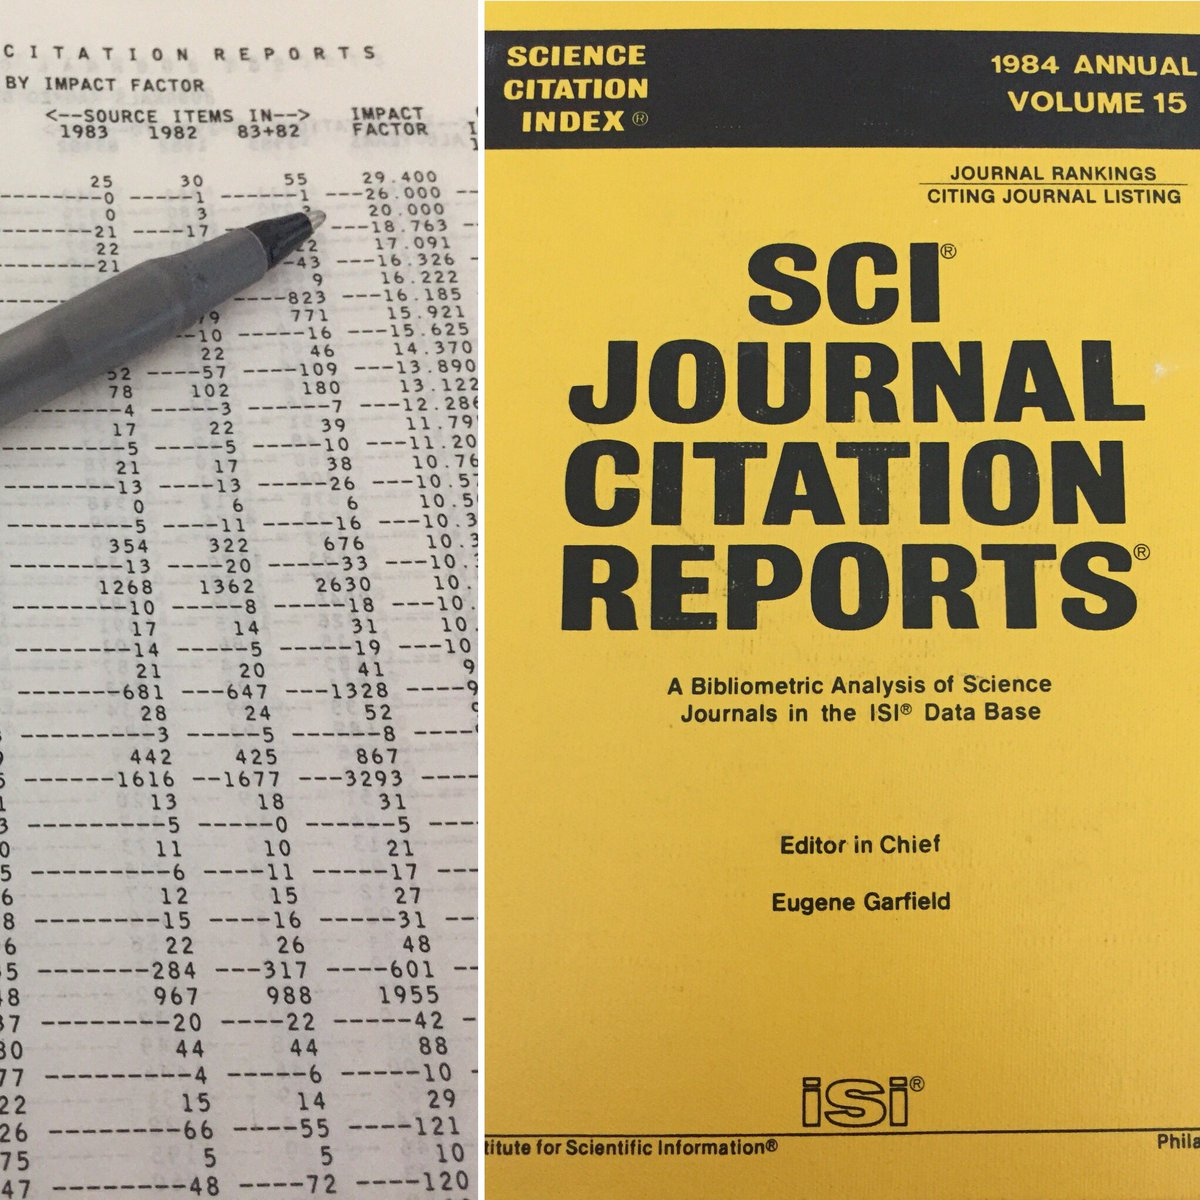 That's a first: explaining how the #ImpactFactor and @webofscience work using an original #JournalCitationReport from the year I was born  #MetricsLiteracy #ScholCommLab<br>http://pic.twitter.com/R4sD1aULJe &ndash; à Desmarais Building (DMS)